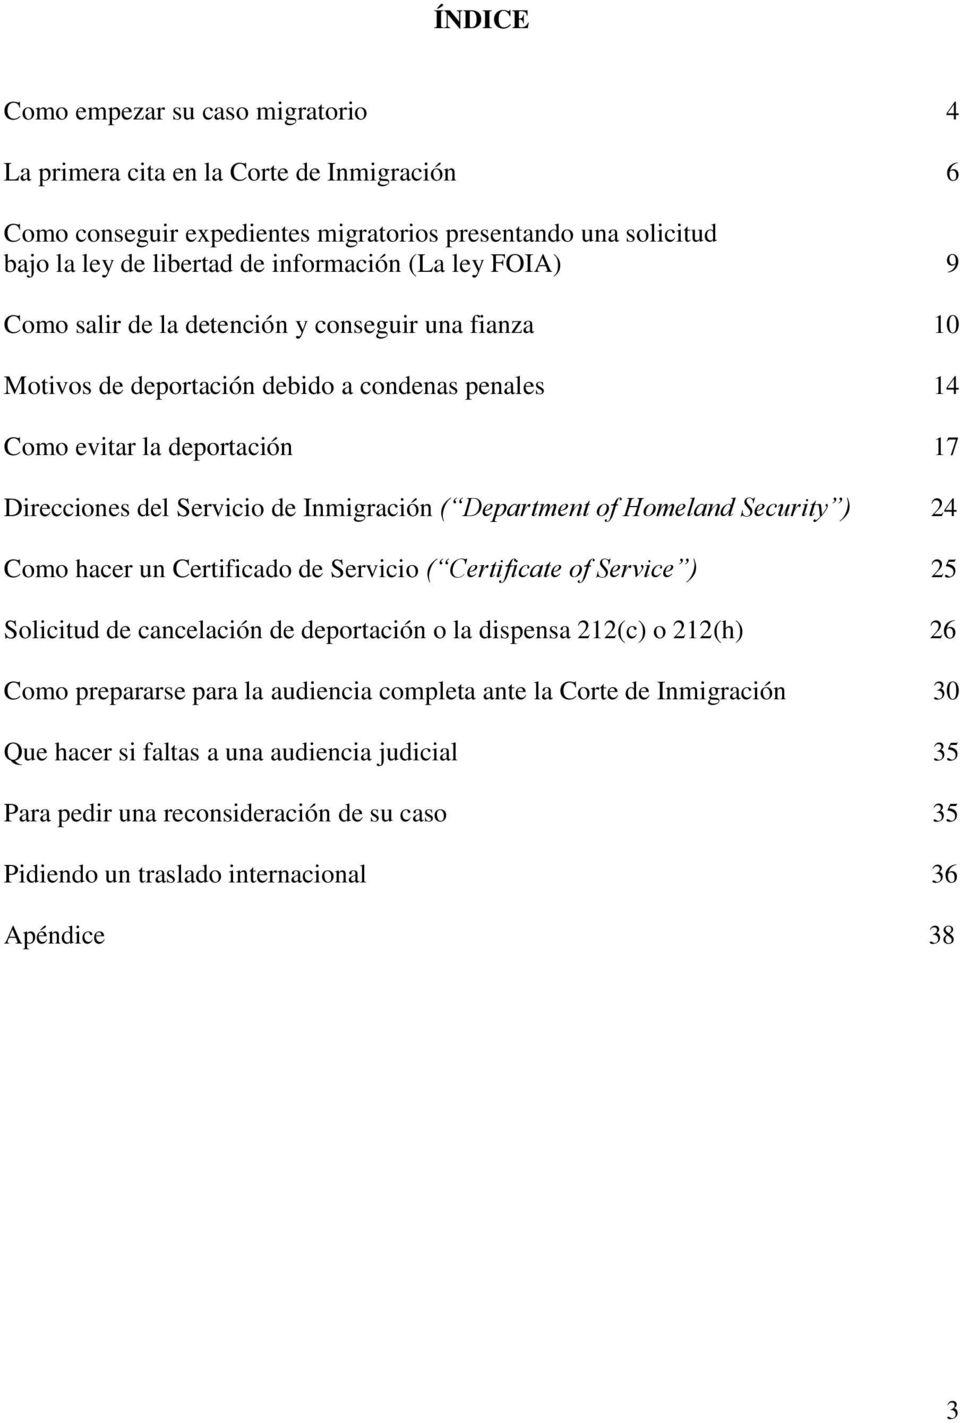 Department of Homeland Security ) 24 Como hacer un Certificado de Servicio ( Certificate of Service ) 25 Solicitud de cancelación de deportación o la dispensa 212(c) o 212(h) 26 Como prepararse